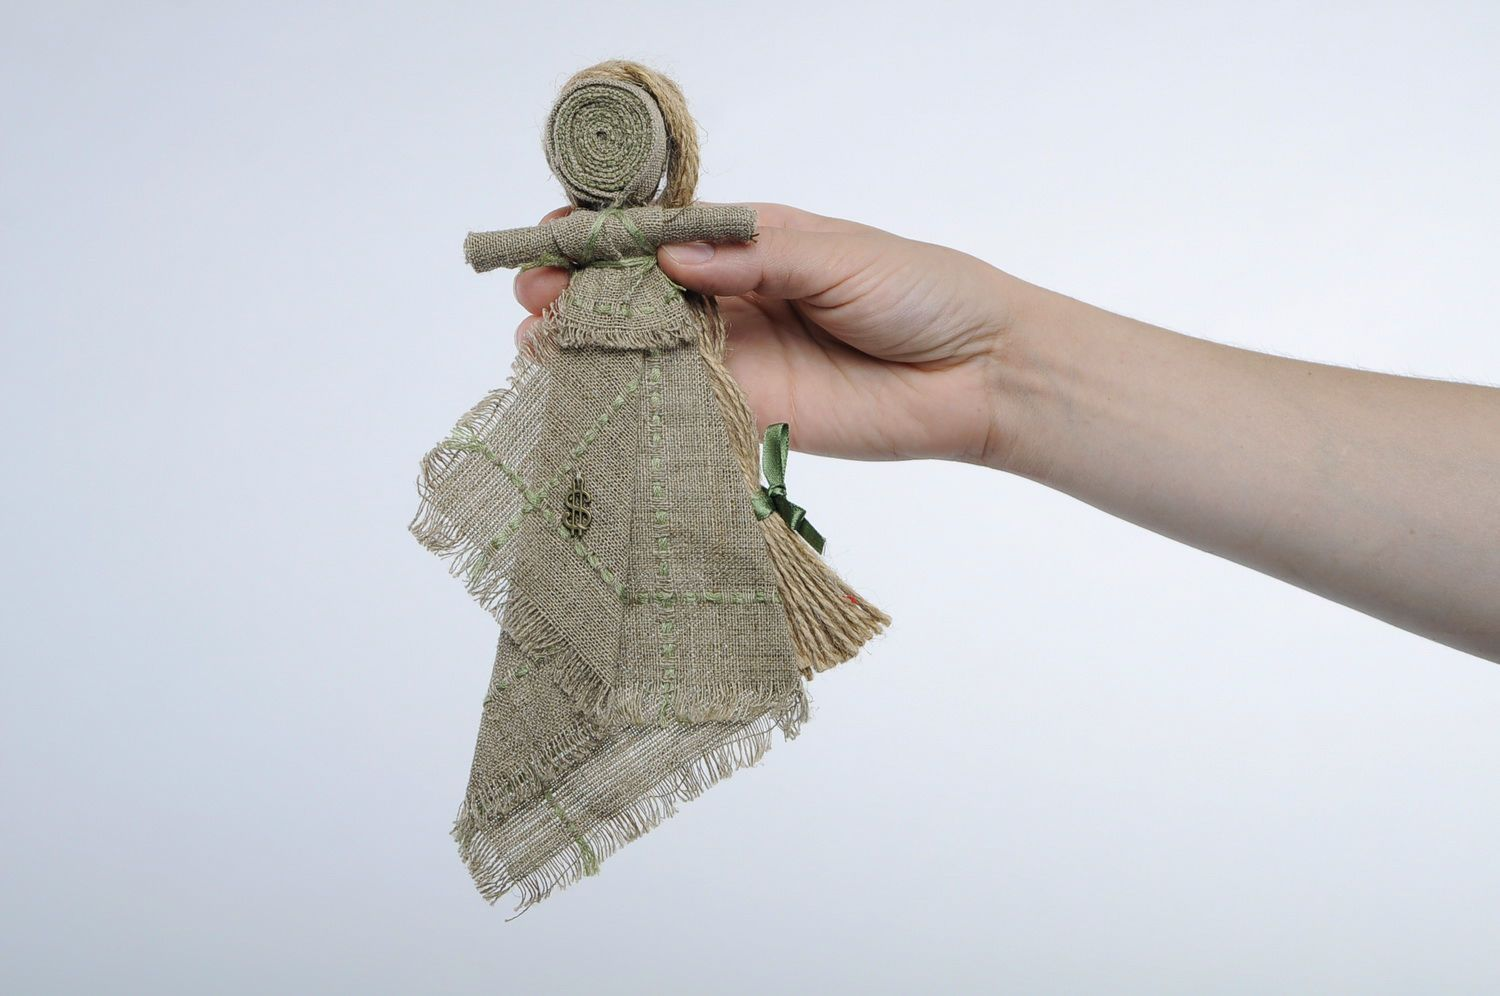 Talisman doll for attracting money  photo 3